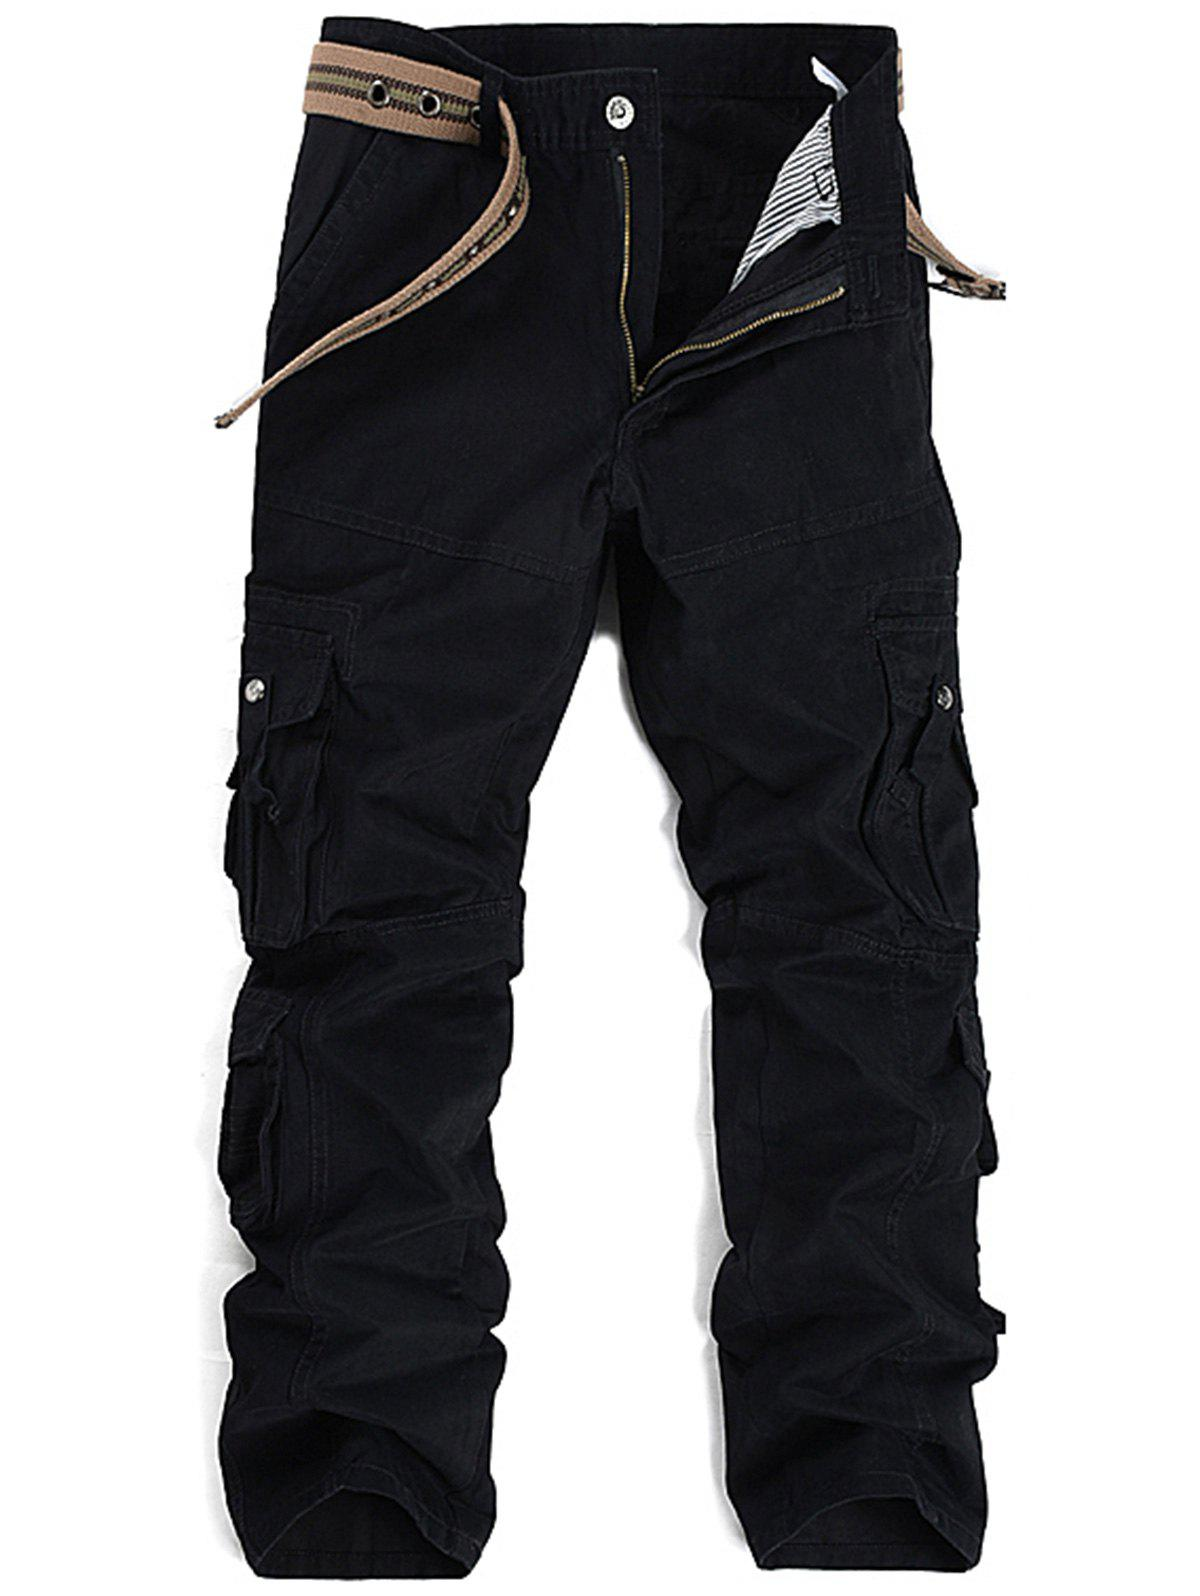 Pleat Pockets Straight Leg Cargo Pants - BLACK 32